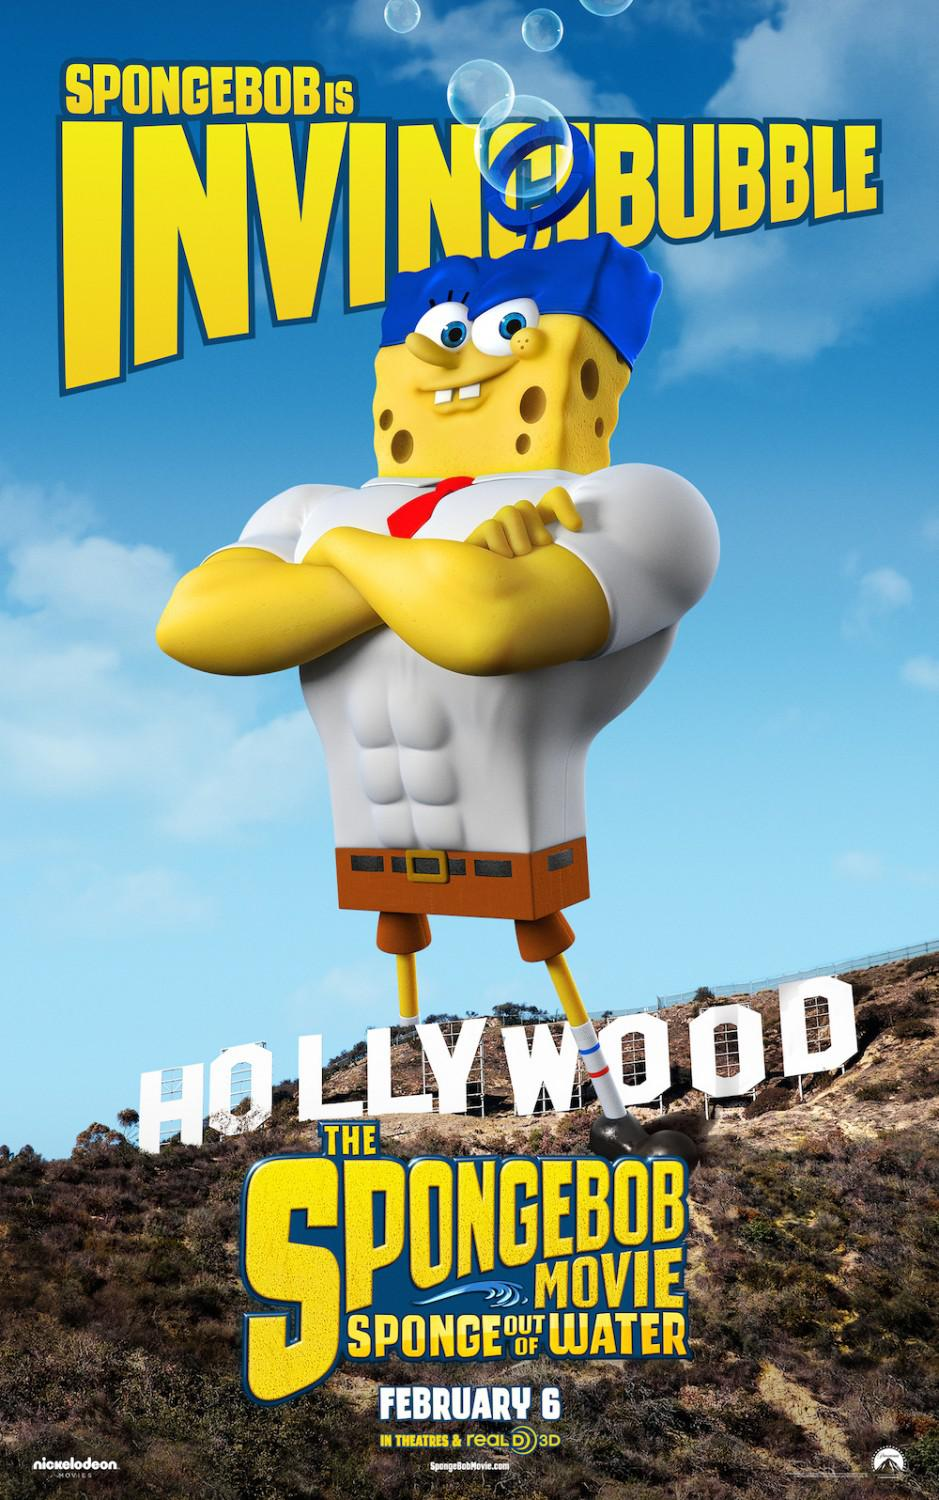 Spongebob Squarepants - Sponge out of Water - poster - Spongebob is Invincibubble